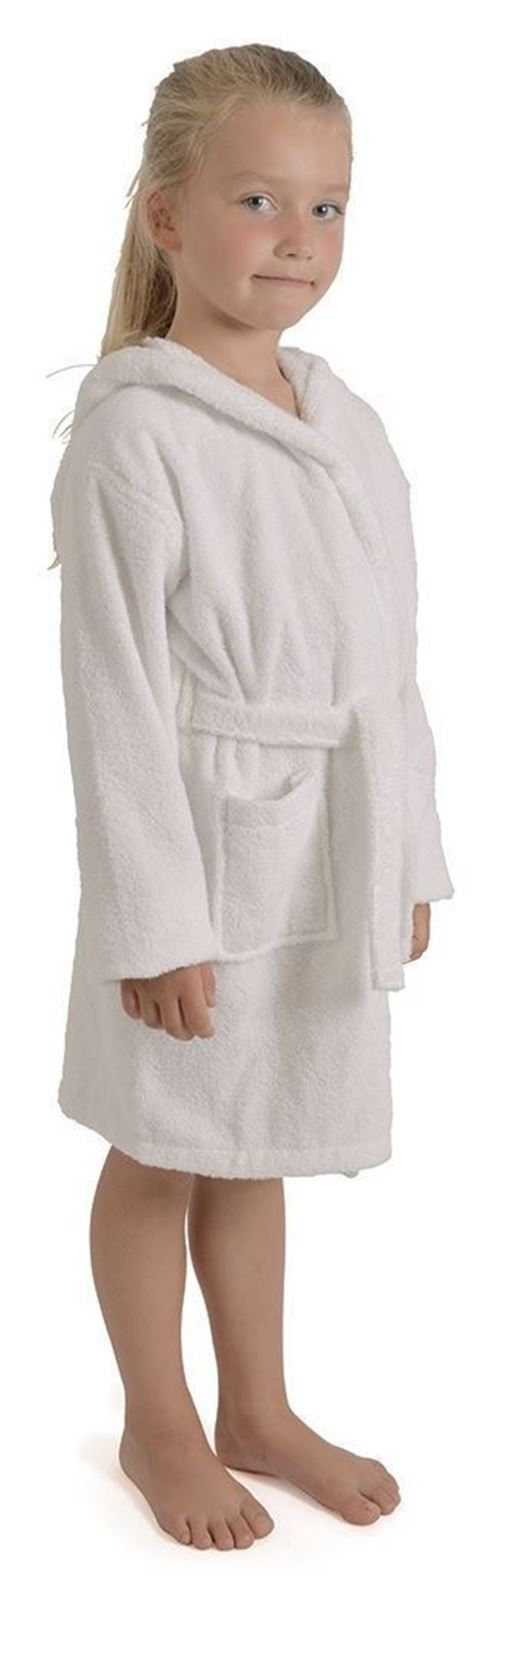 Boys Girls Kids Childrens Hooded Towelling Dressing Gown Wrap Robe